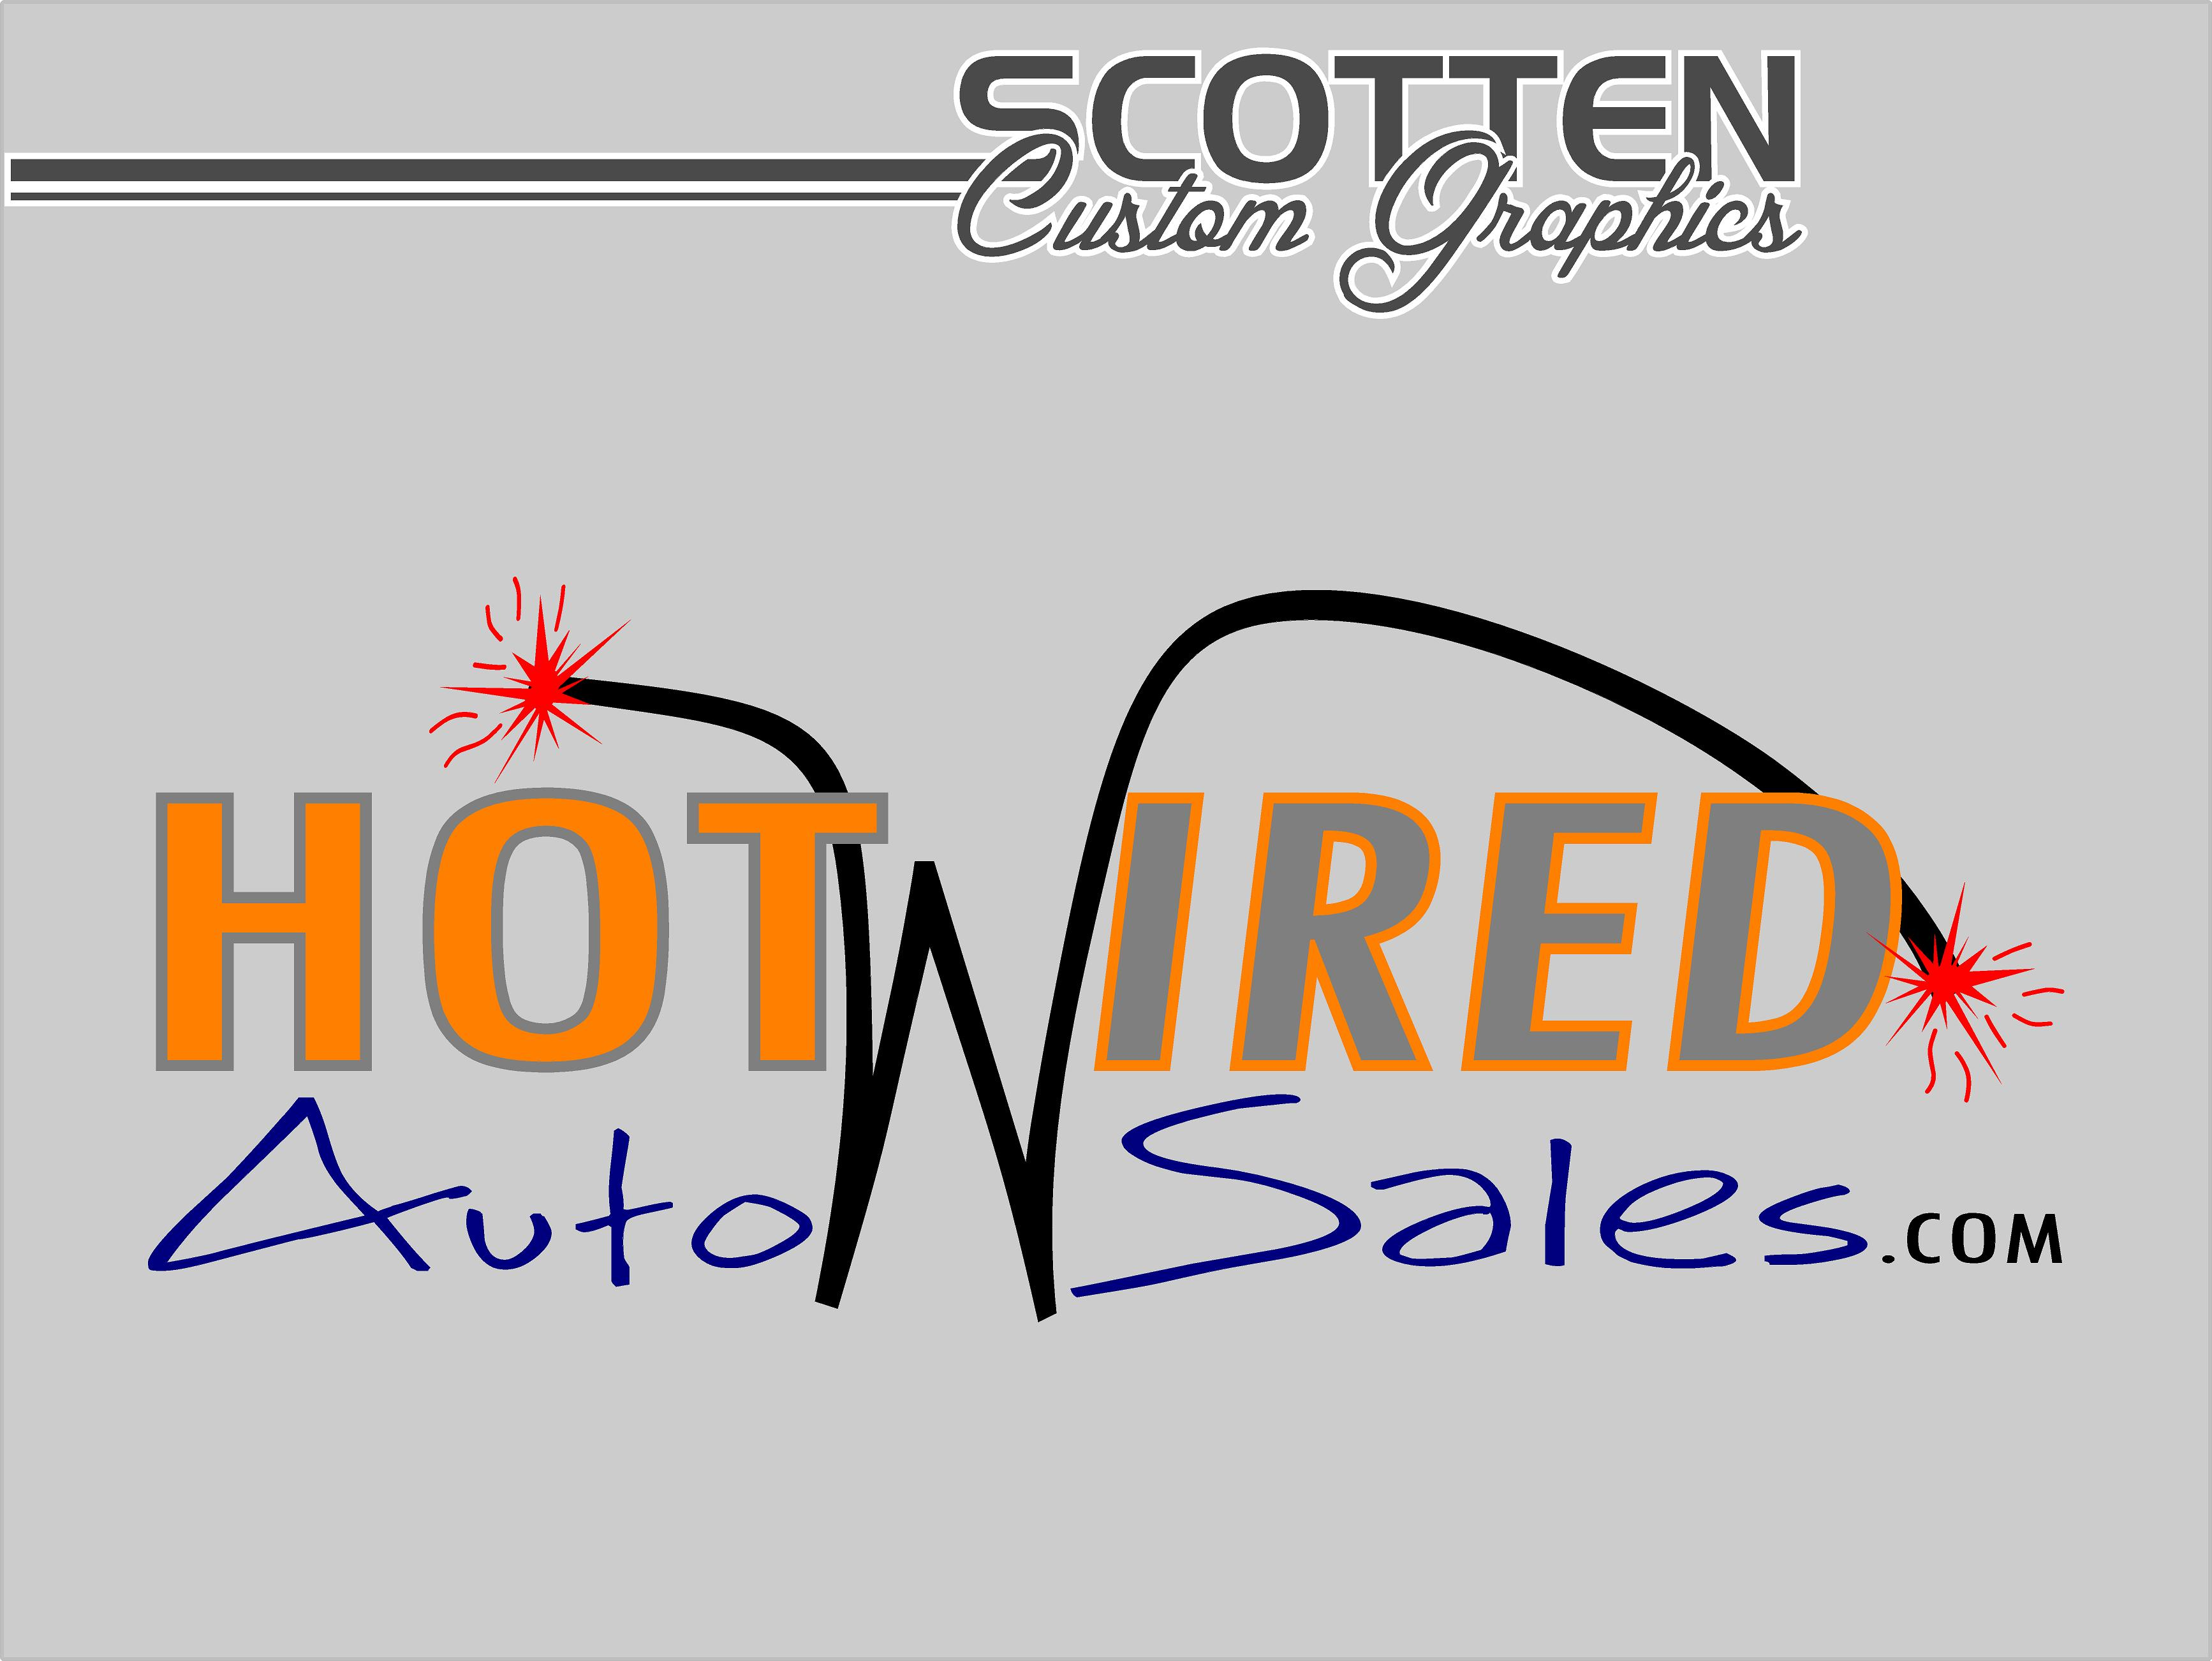 Hotwired Auto Sales